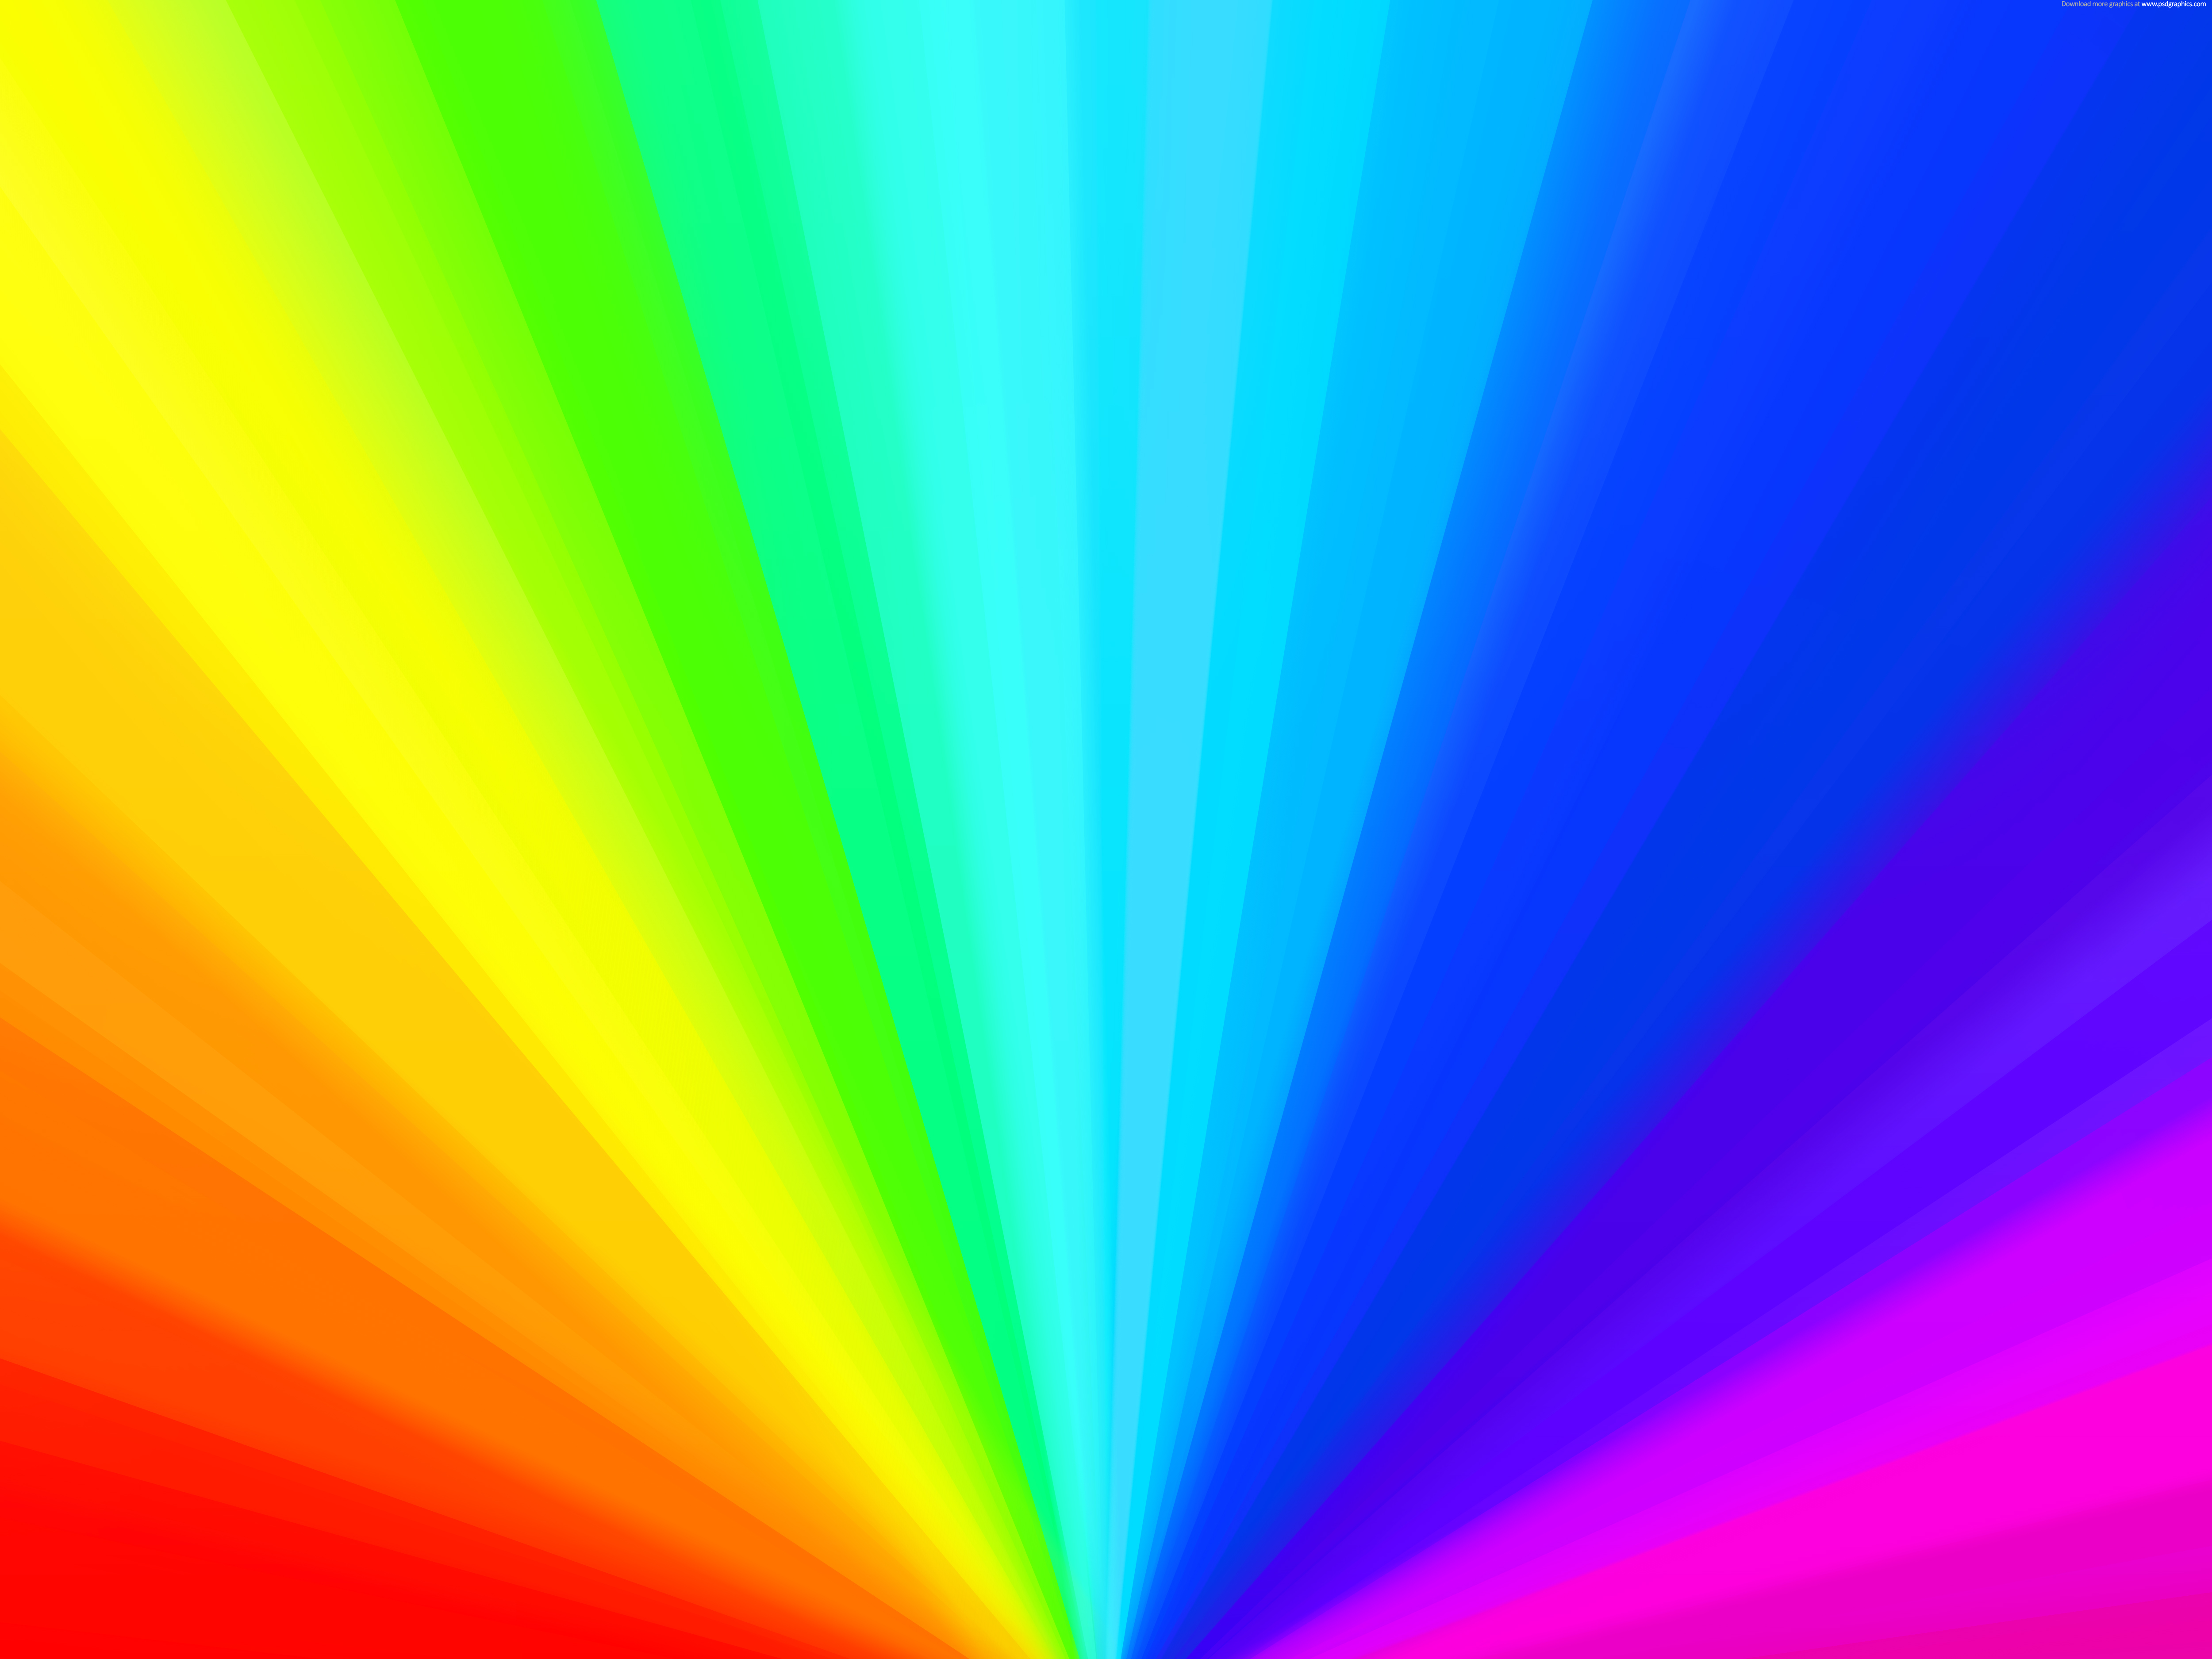 Rainbow Background Images Rainbow Backgrounds 5000x3750 Download Hd Wallpaper Wallpapertip